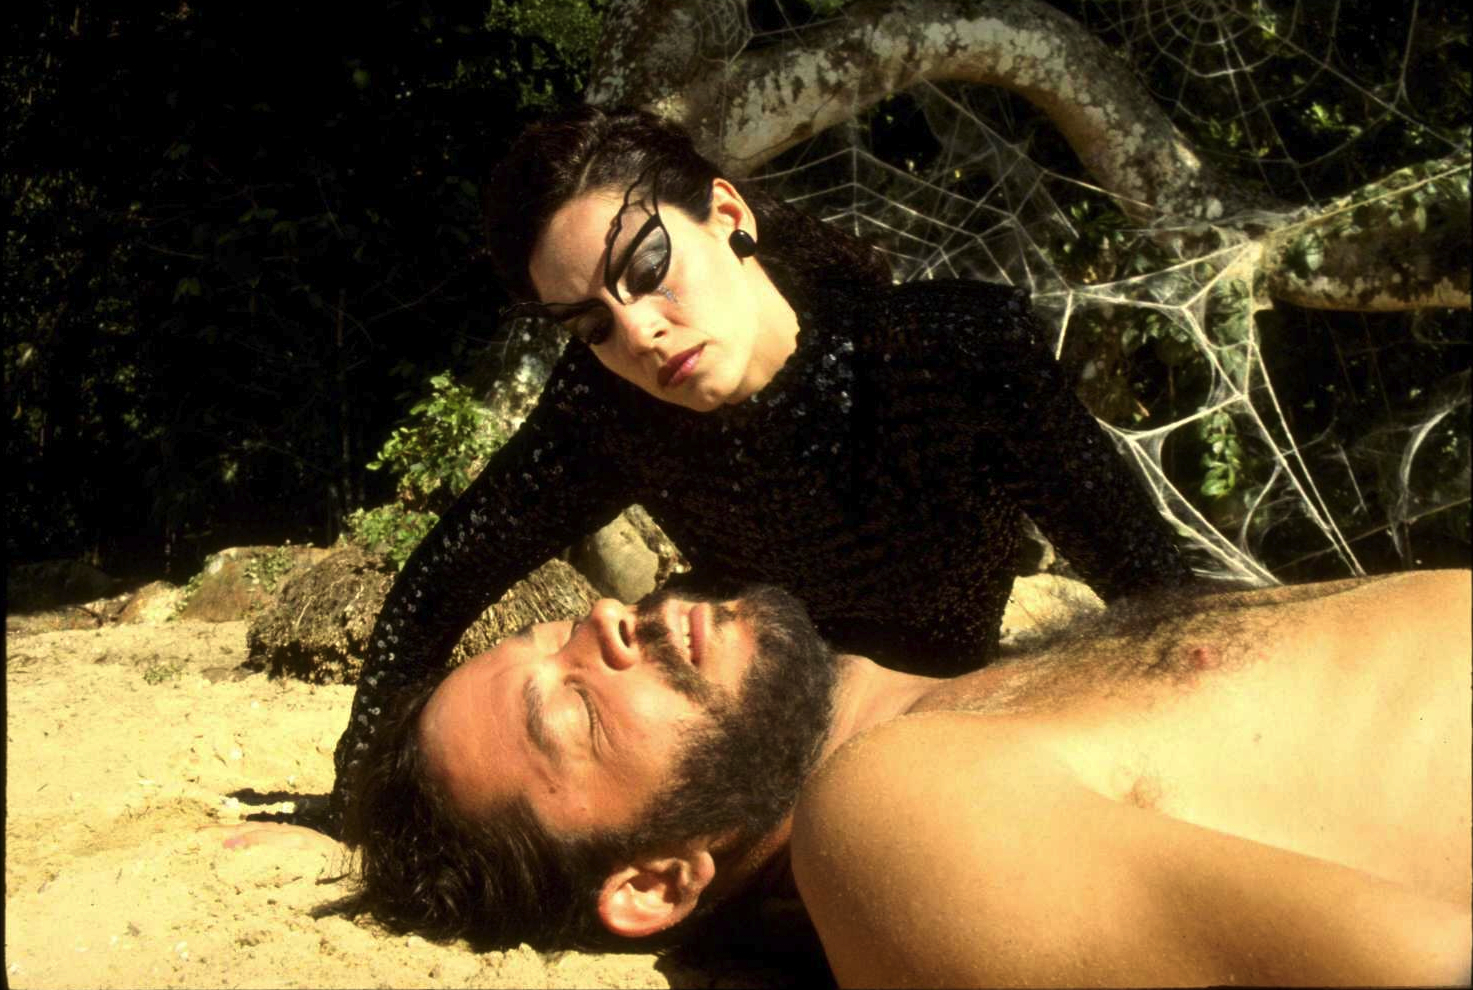 Movie Review: Kiss of the Spider Woman